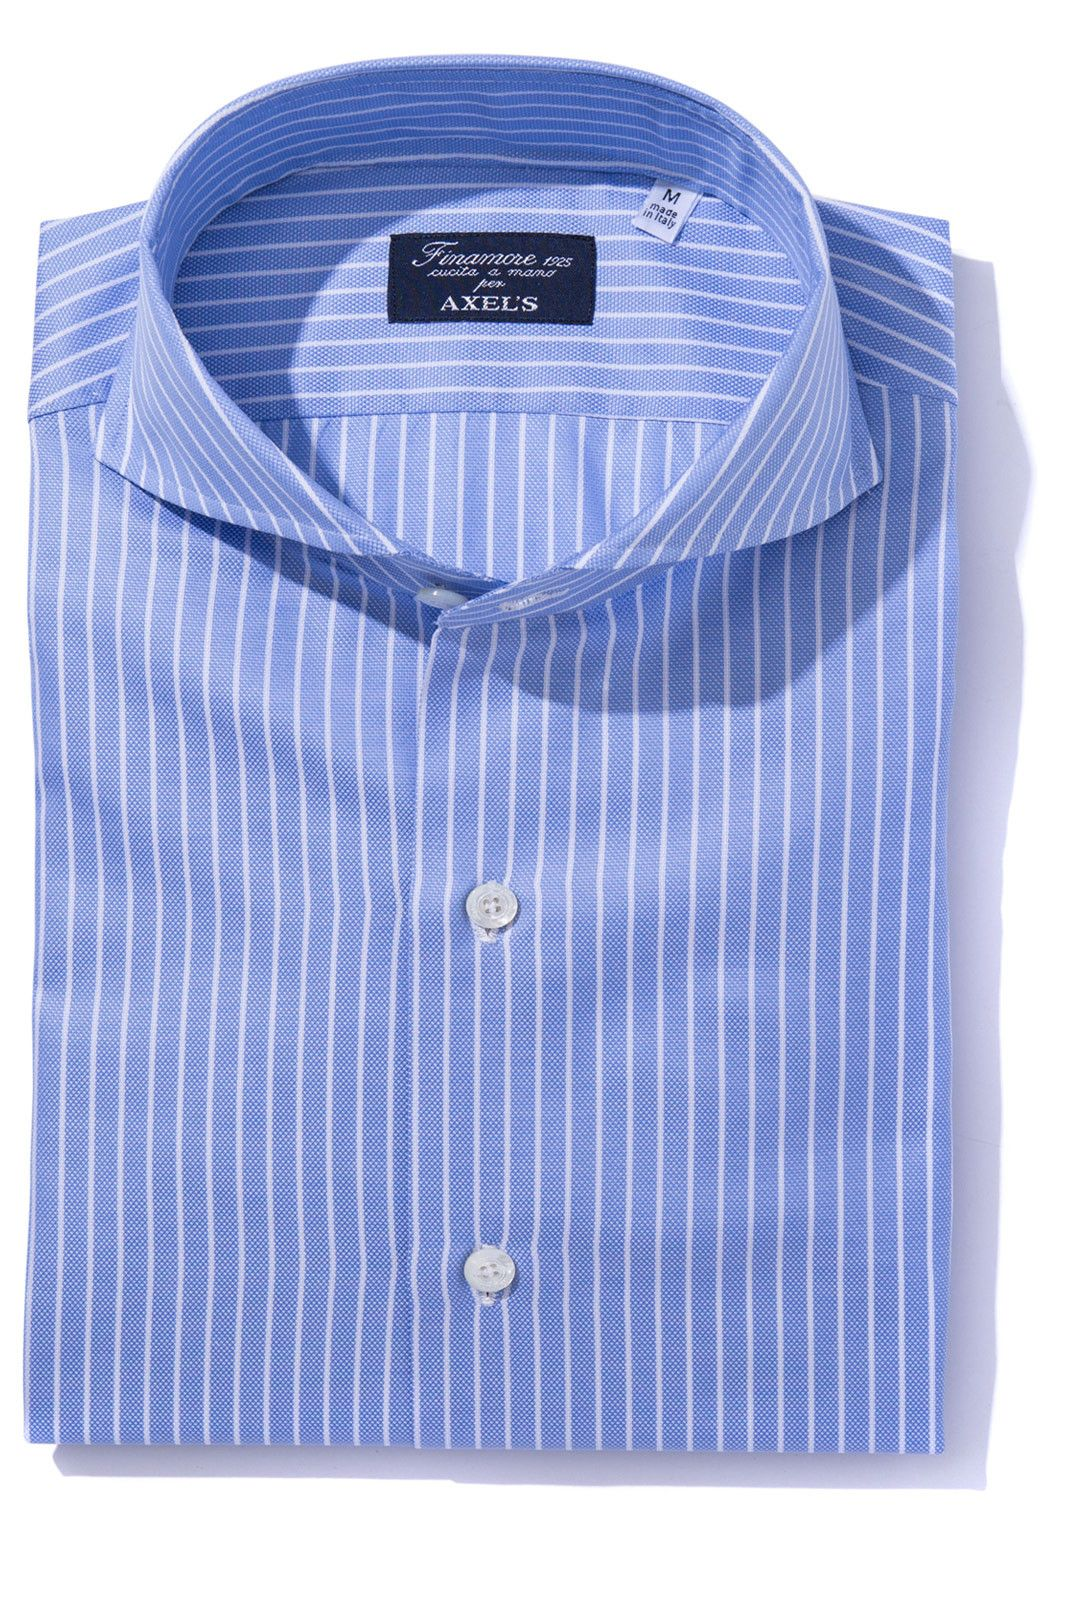 3443a480 Design your own Cheap Tailored Shirts from a large range of finest shirt  materials. you'll additionally get tailored shirts from our prepared design  ...